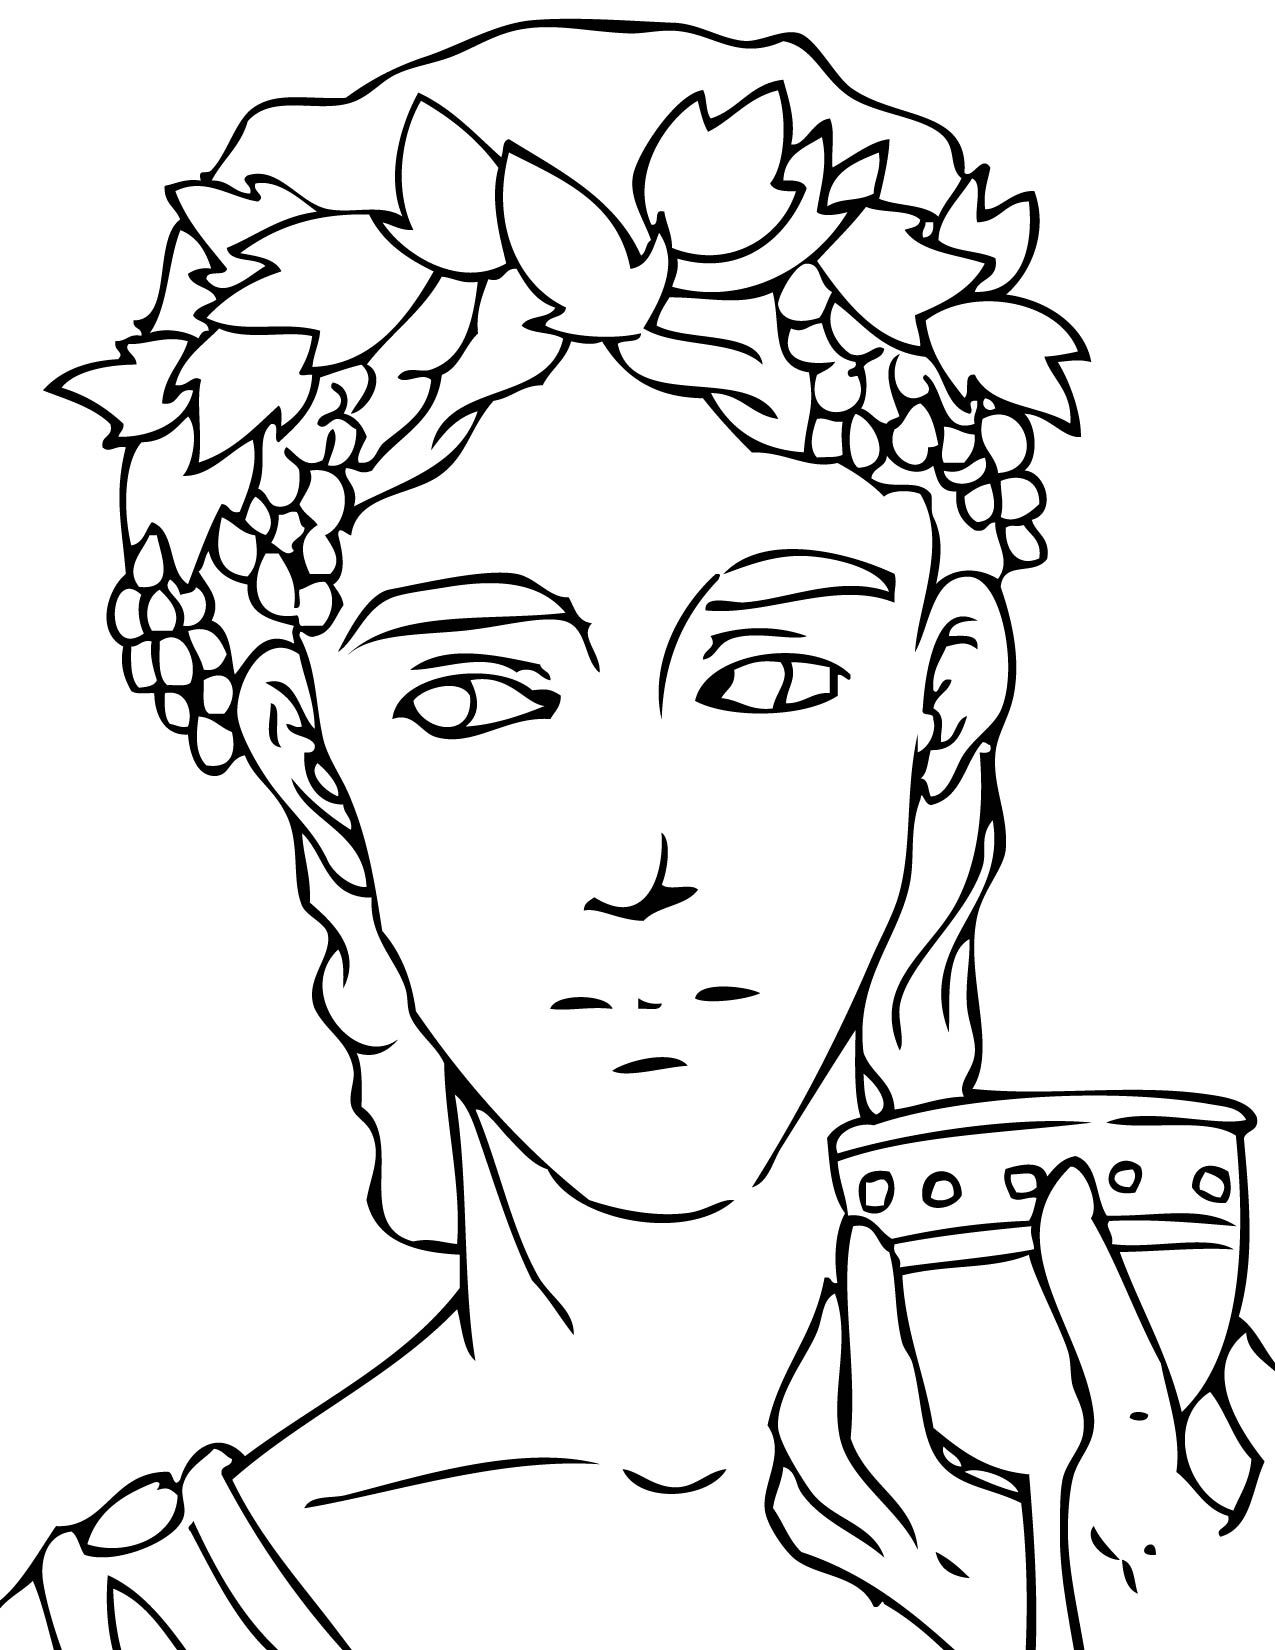 Pin By Zsa Zsa On Coloring Book | Greek Gods, Goddesses